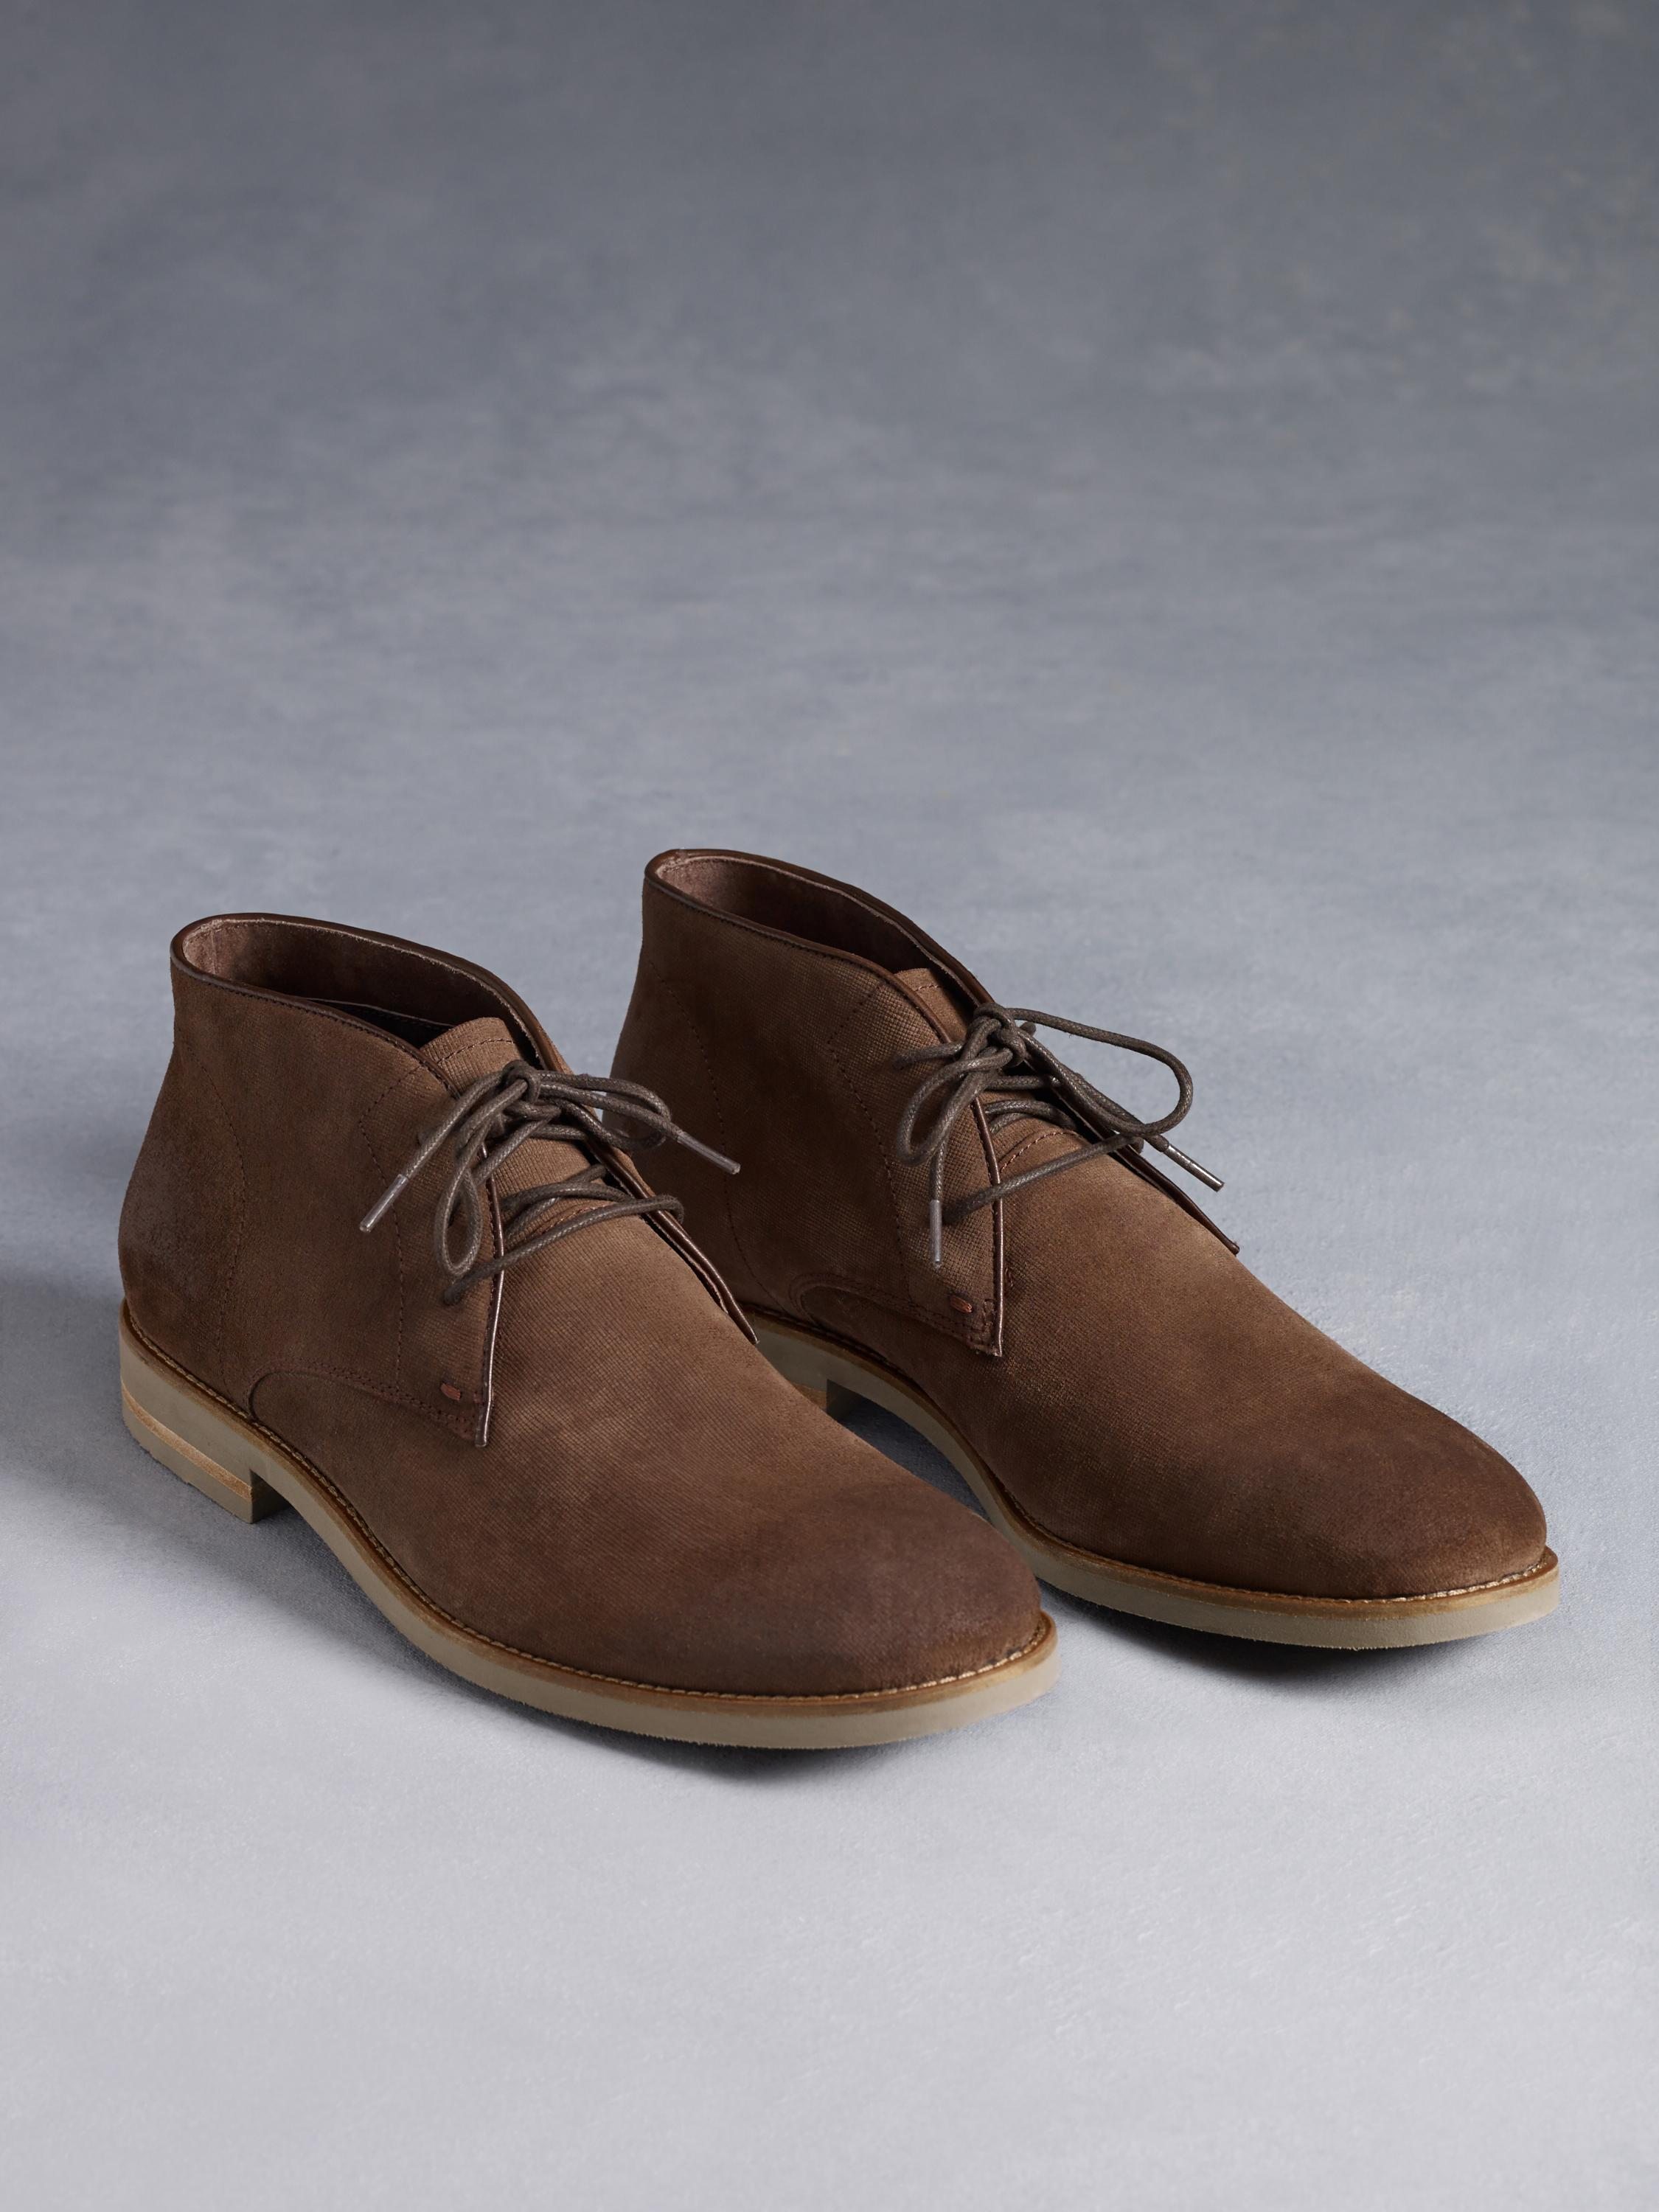 John Varvatos Men S Shoes Boots Sneakers Cj Online Stores